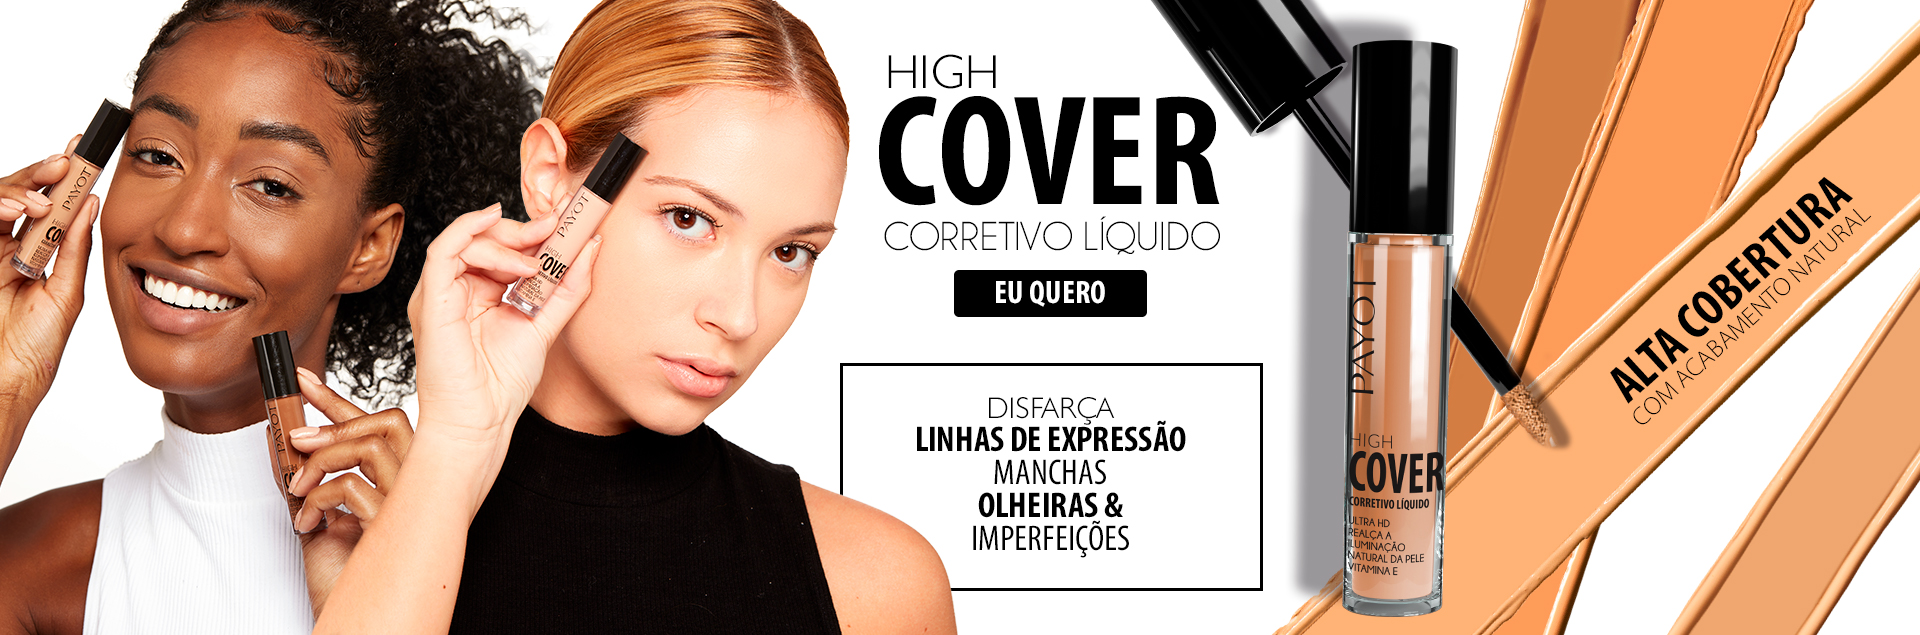 High Cover